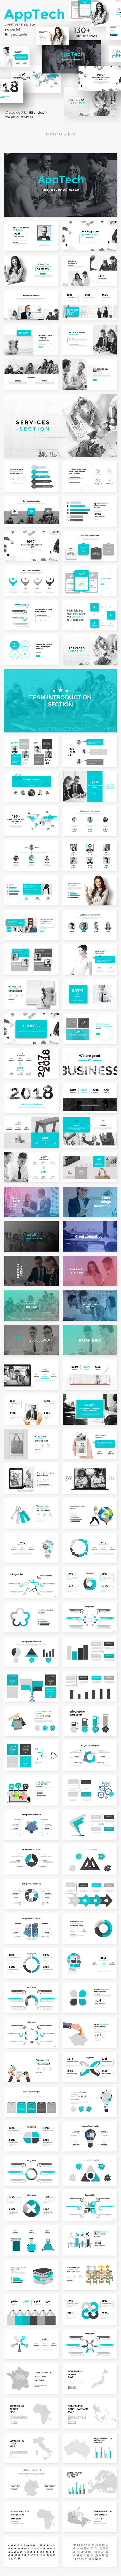 AppTech Pitch Deck Business Keynote Template - Business Keynote Templates